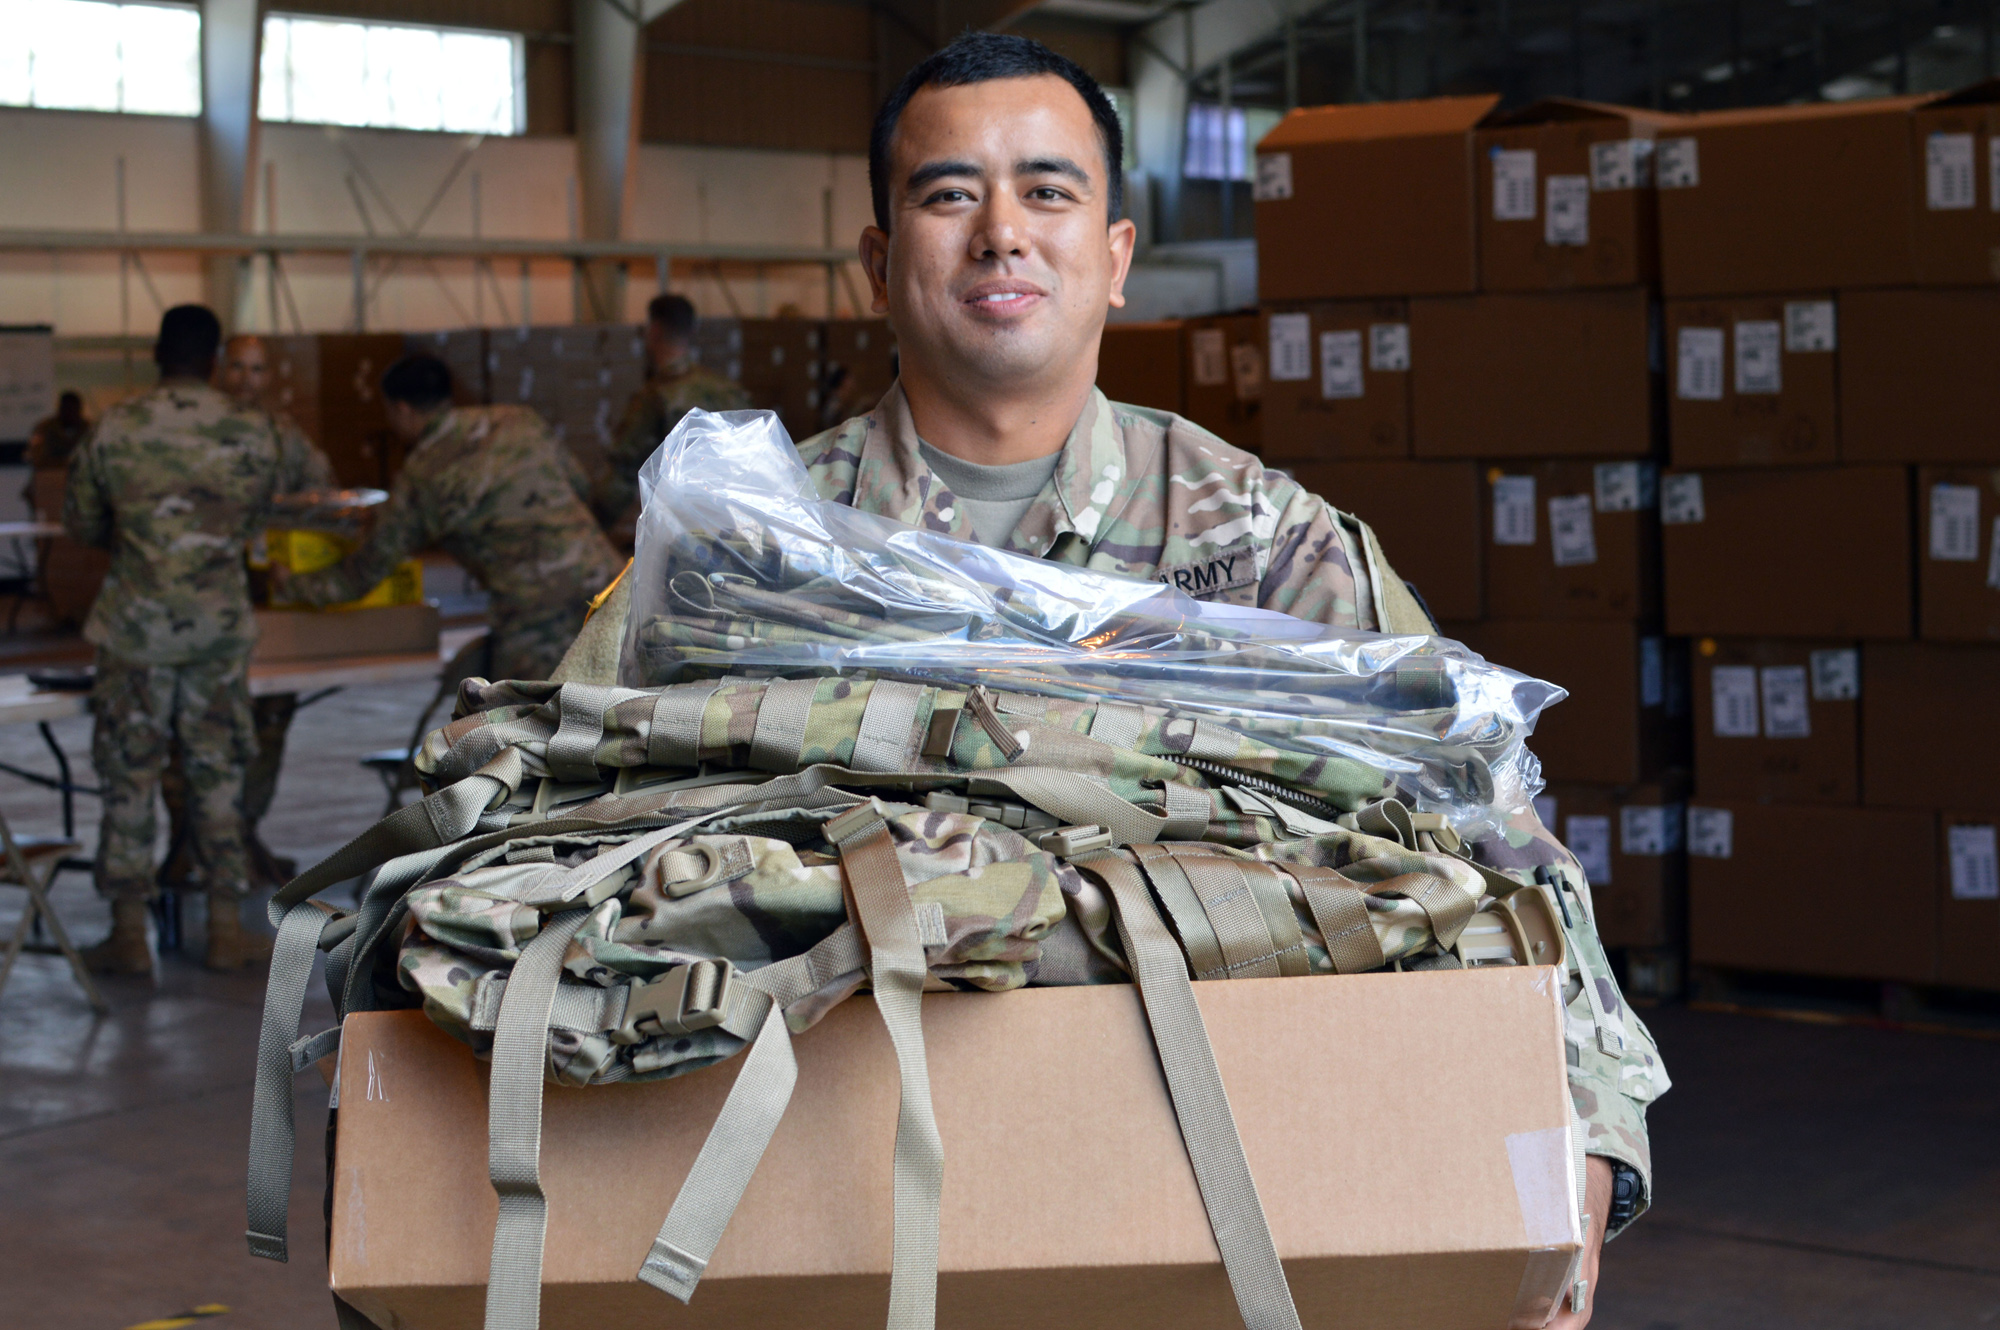 Spc. Saurav Udas, a supply specialist assigned to the 3rd BCT, 25th ID, holds new Operation Camouflage Pattern to be used in the tropical environments in the Pacific region. A program's schedule—how quickly the Army wants to get gear in the hands of Soldiers—requires considering return on investment. (U.S. Army photo by Staff Sgt. Armando R. Limon, 3rd BCT, 25th ID)